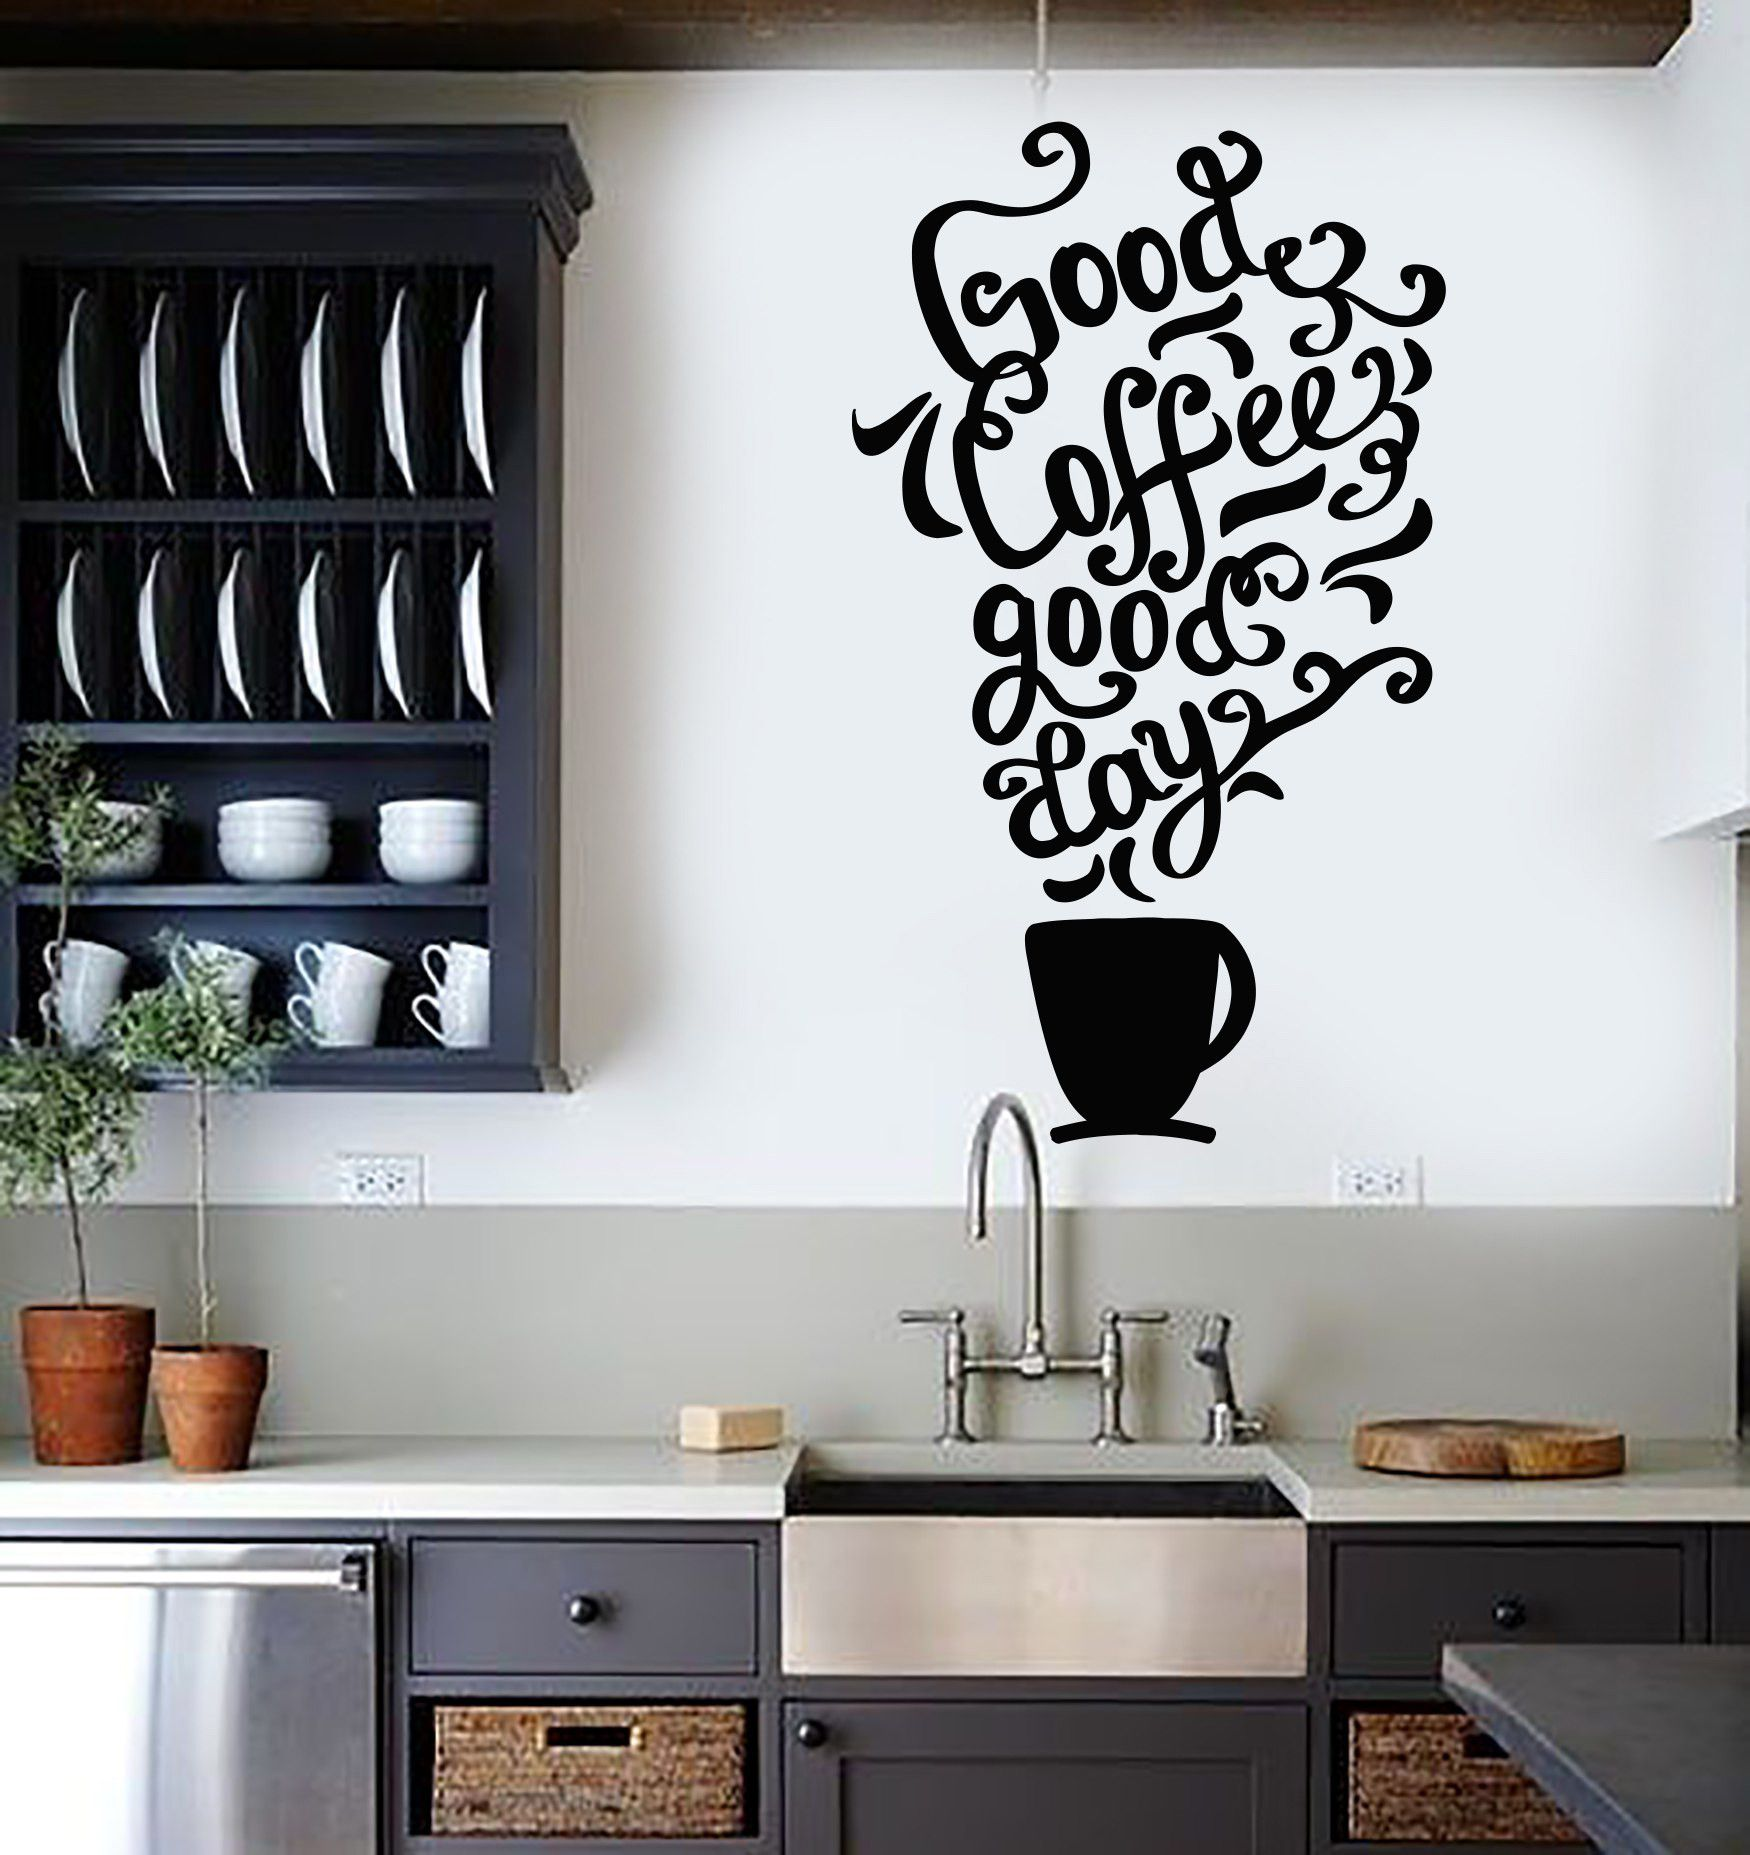 Vinyl Wall Decal Quote Coffee Kitchen Shop Restaurant Cafe Art - Cute custom vinyl stickers   for business